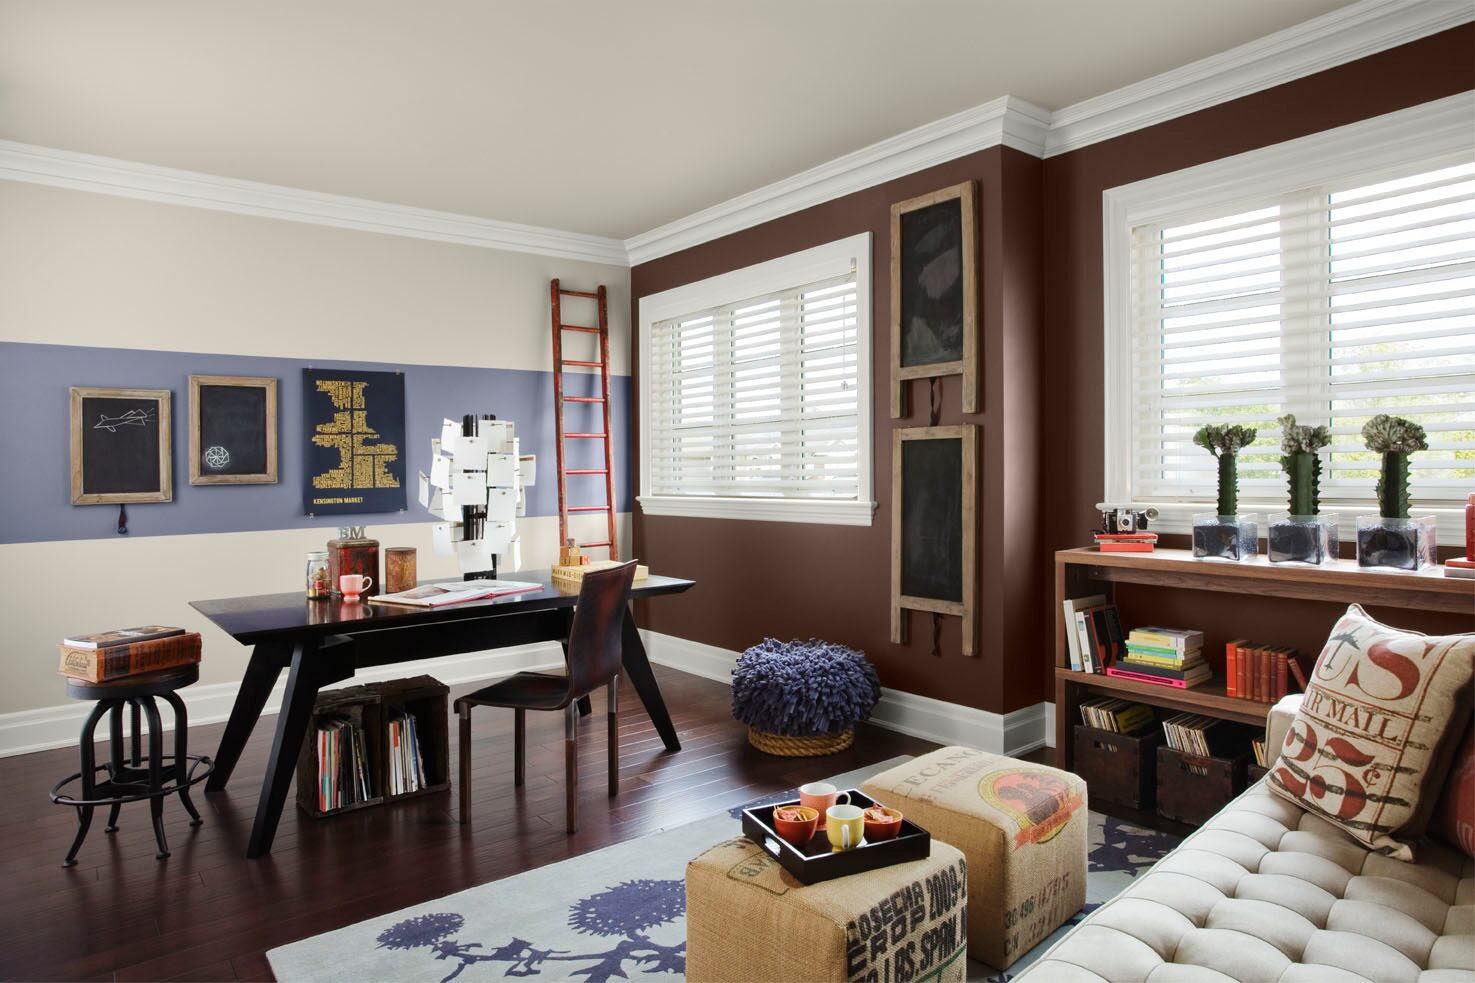 Color Trends 2012 - Paint Color Trends for 2012 by Benjamin Moore